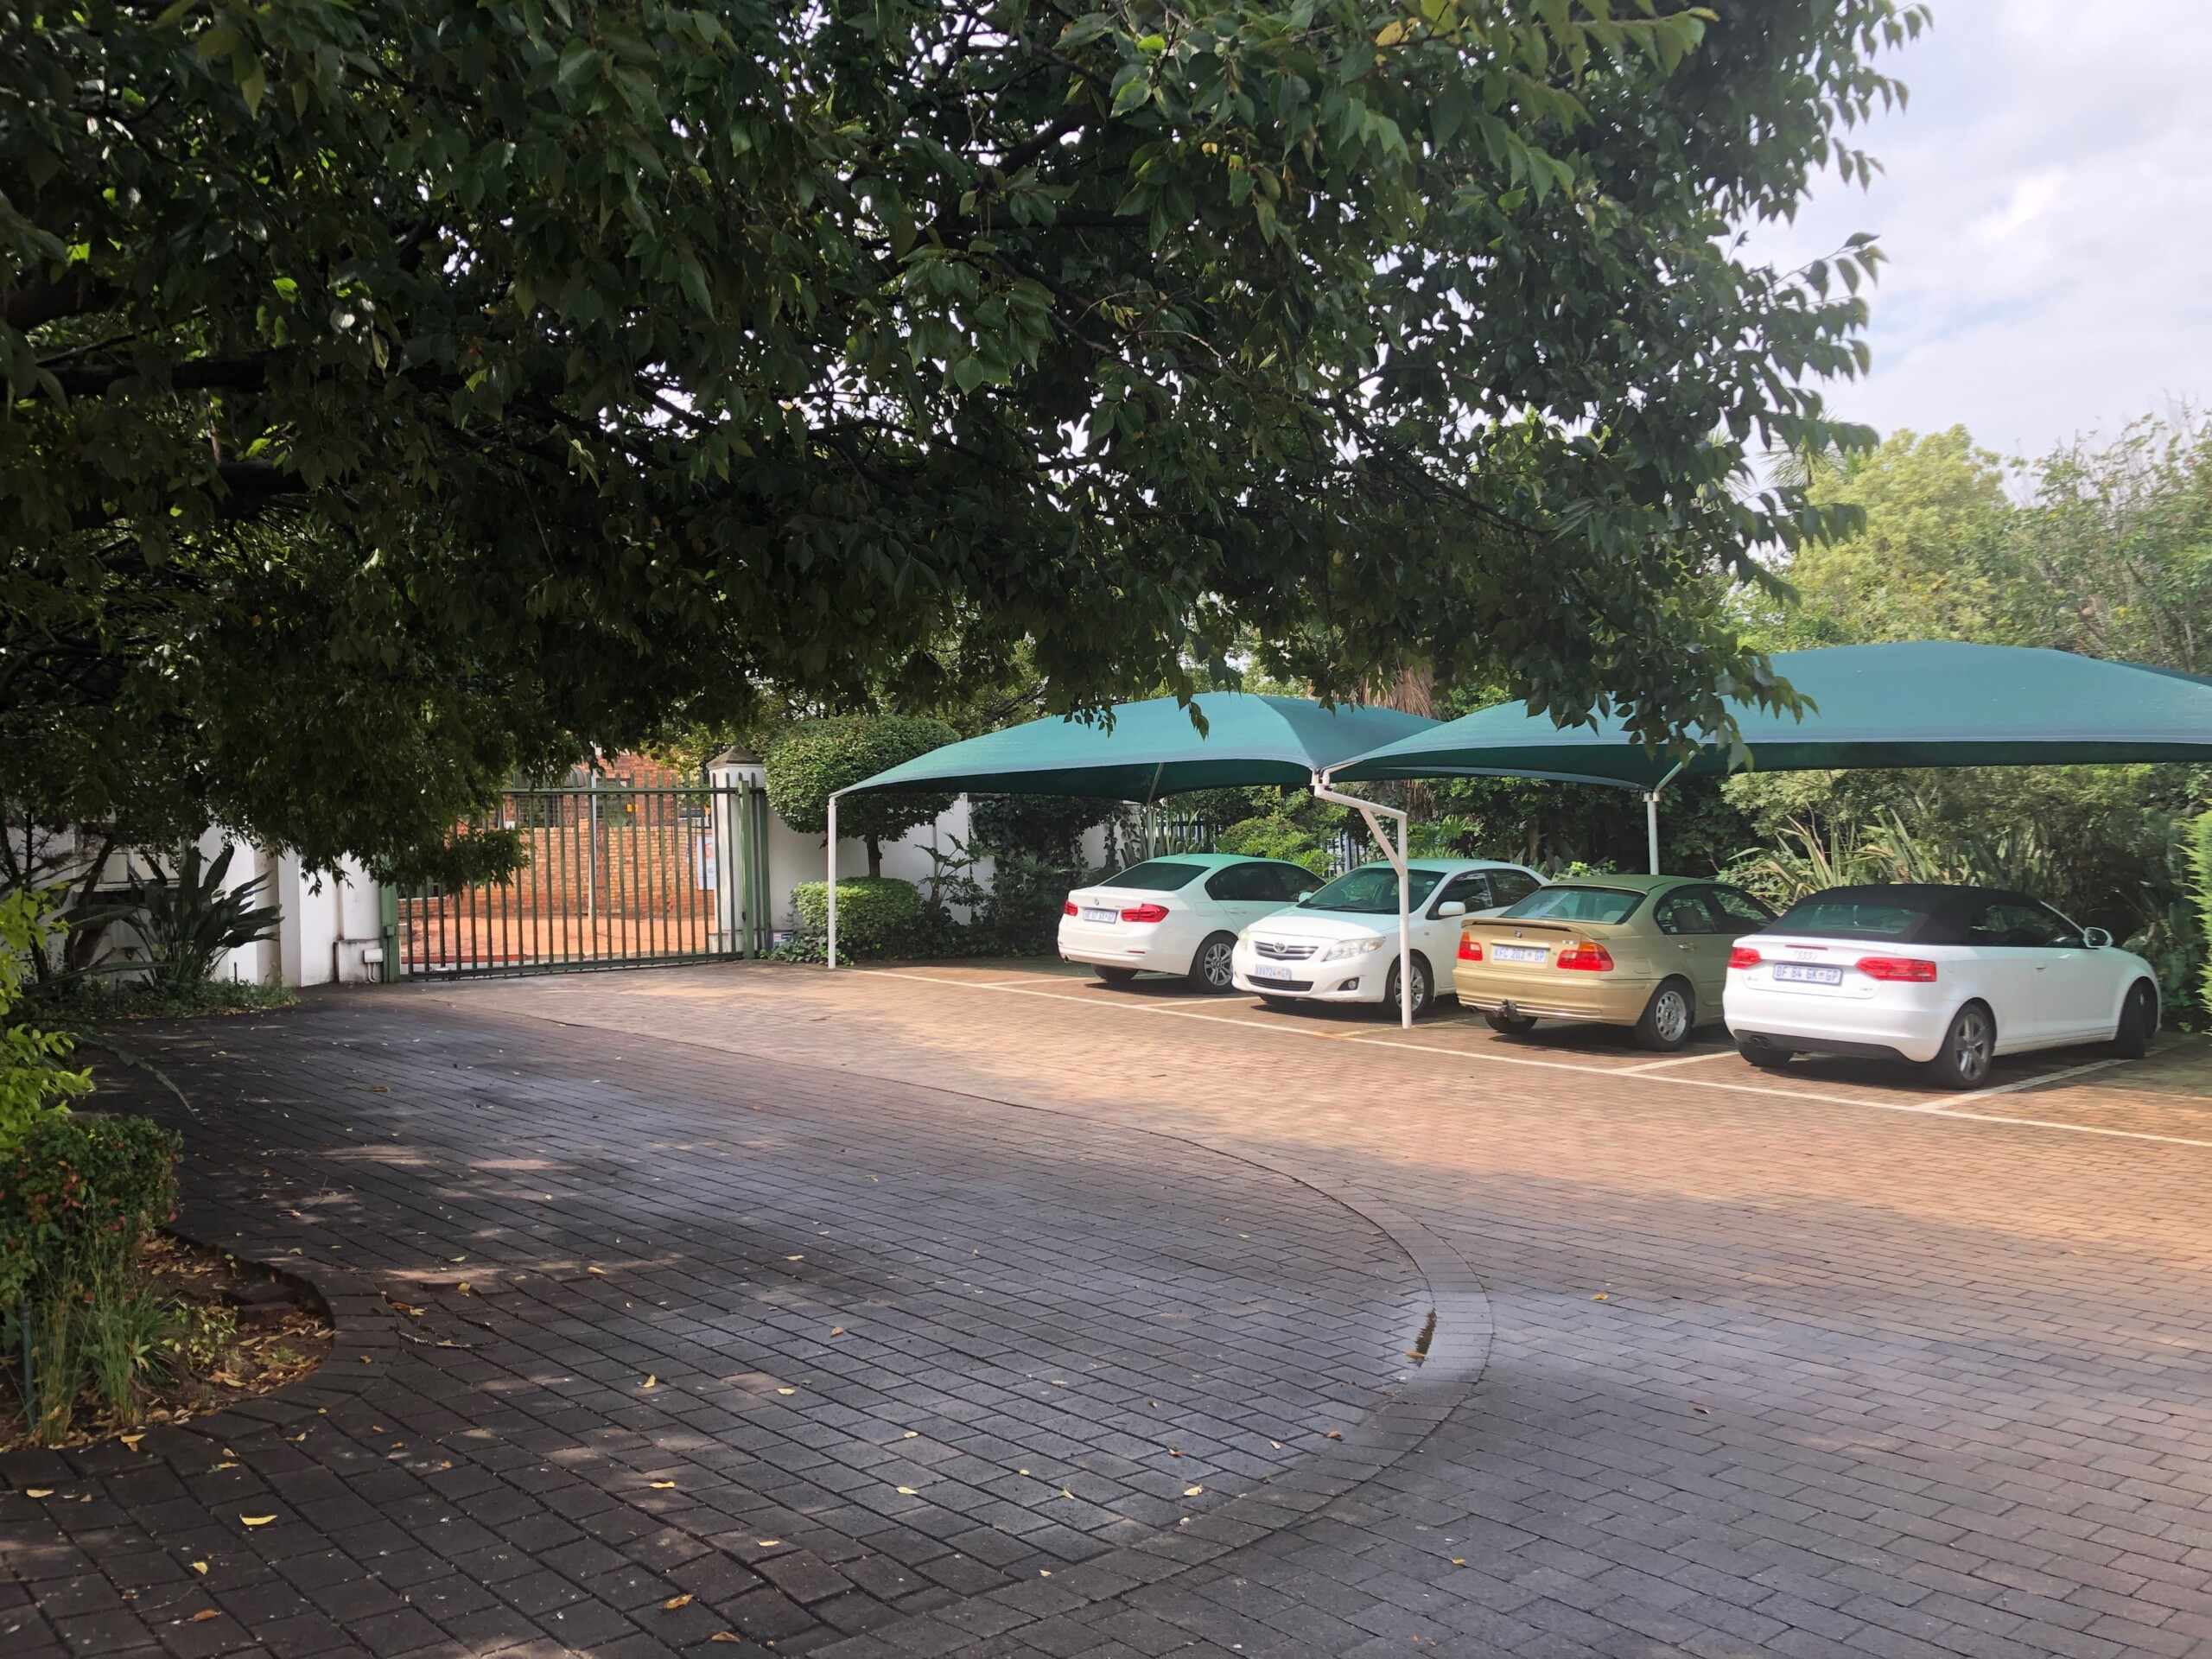 rooted-properties-office-tolet-forsale-randburg-bromhof-boskruin-commercial-property- best-top-commercial-property-brokers